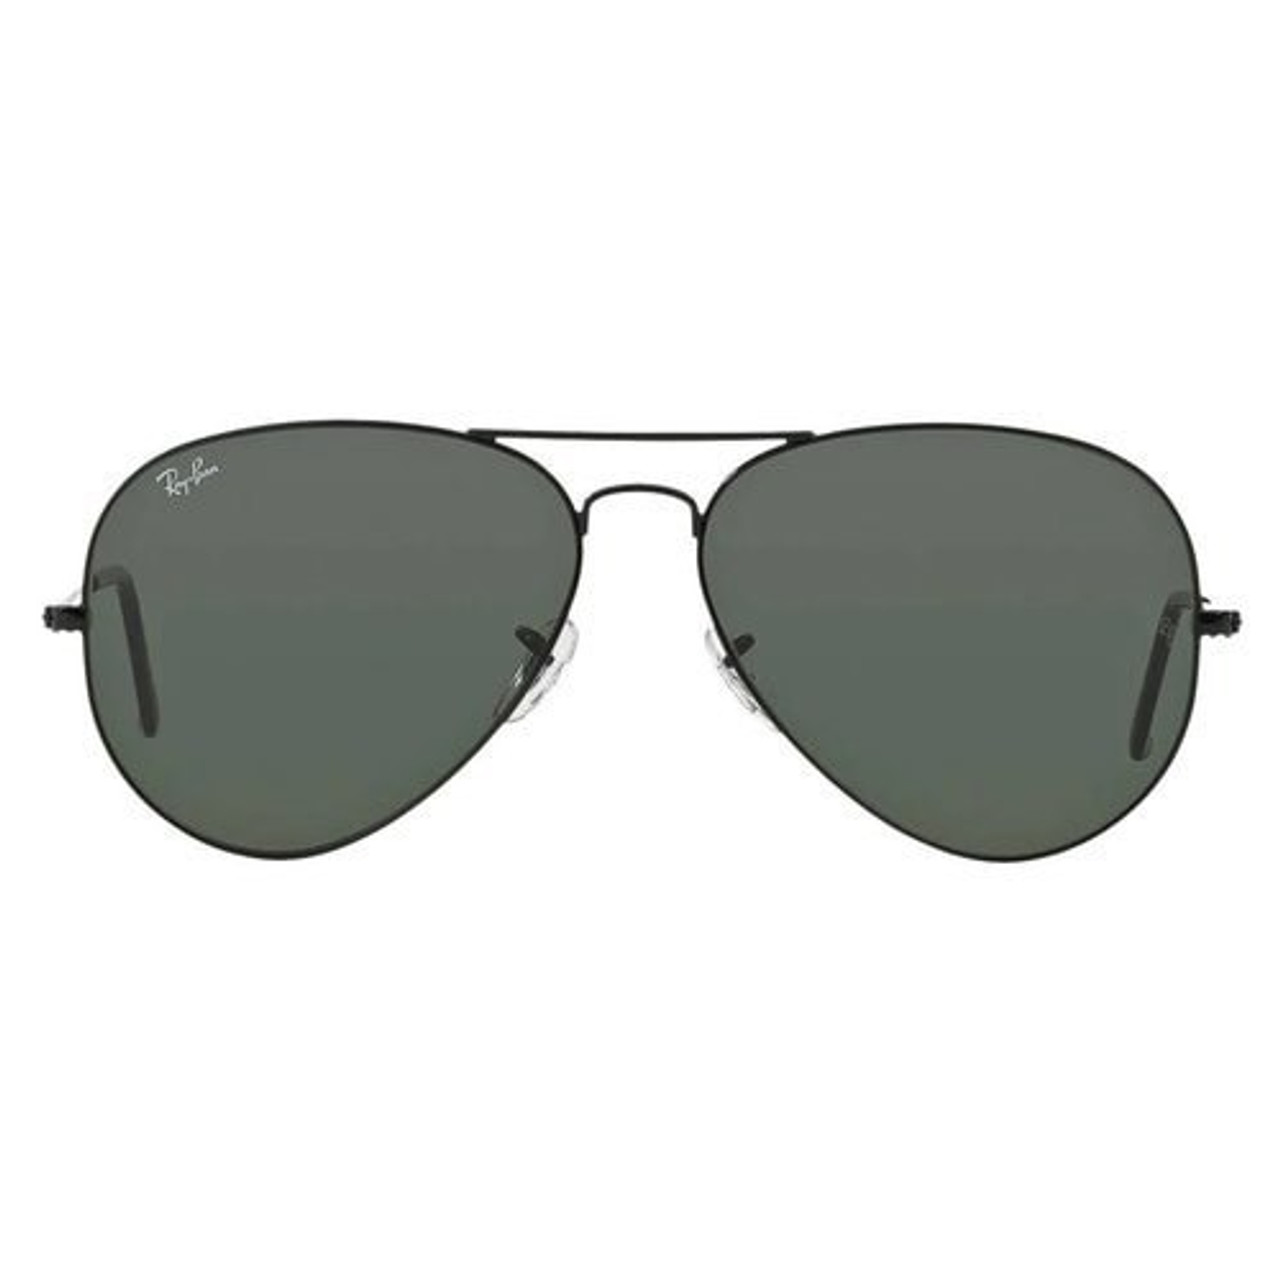 778a71499656 Ray-Ban Aviator Sunglasses In Non-Polarized Green Classic G-15 - CHROME